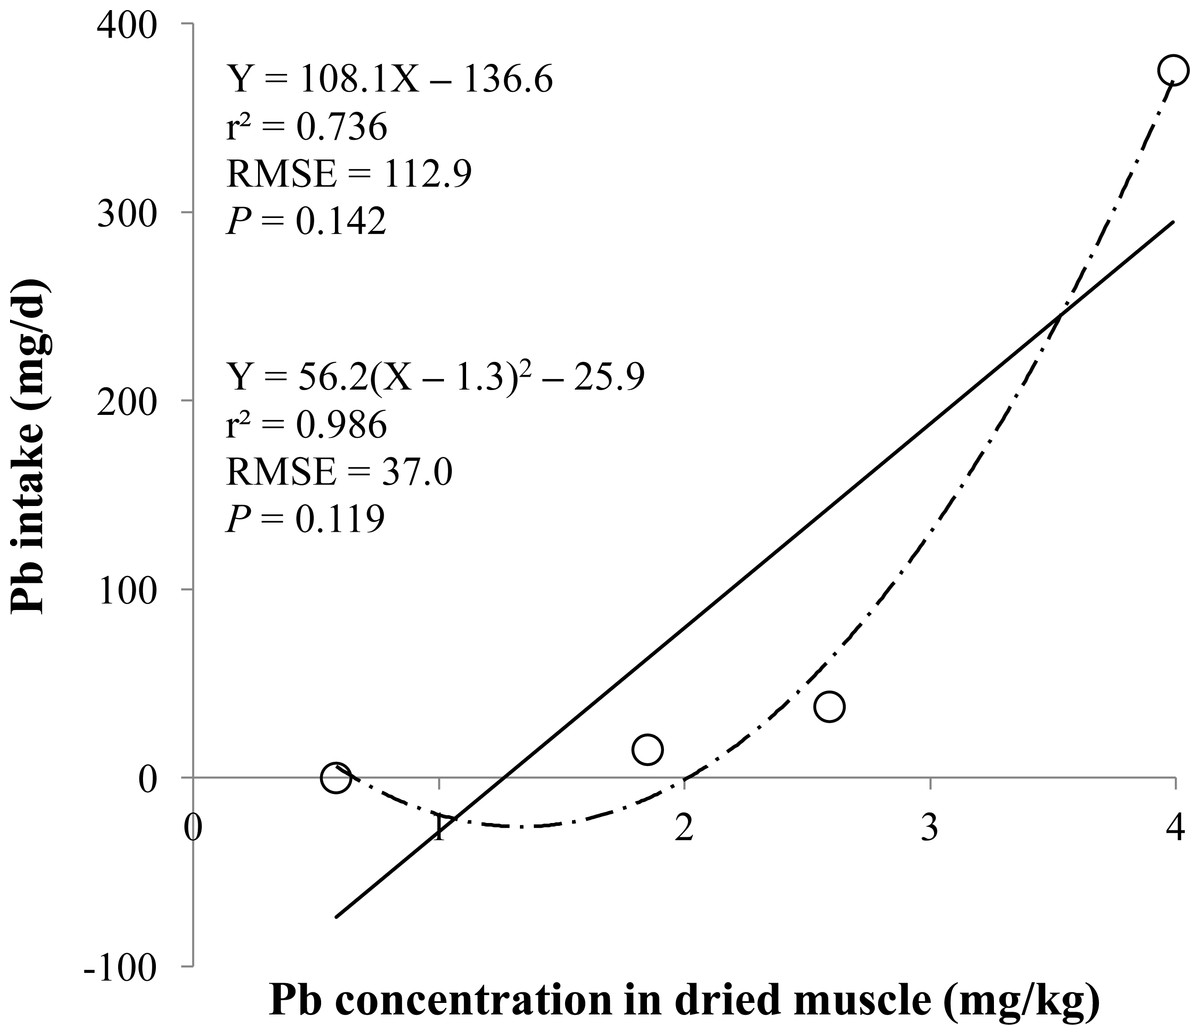 Effects Of Graded Concentrations Of Supplemental Lead On Lead Concentrations In Tissues Of Pigs